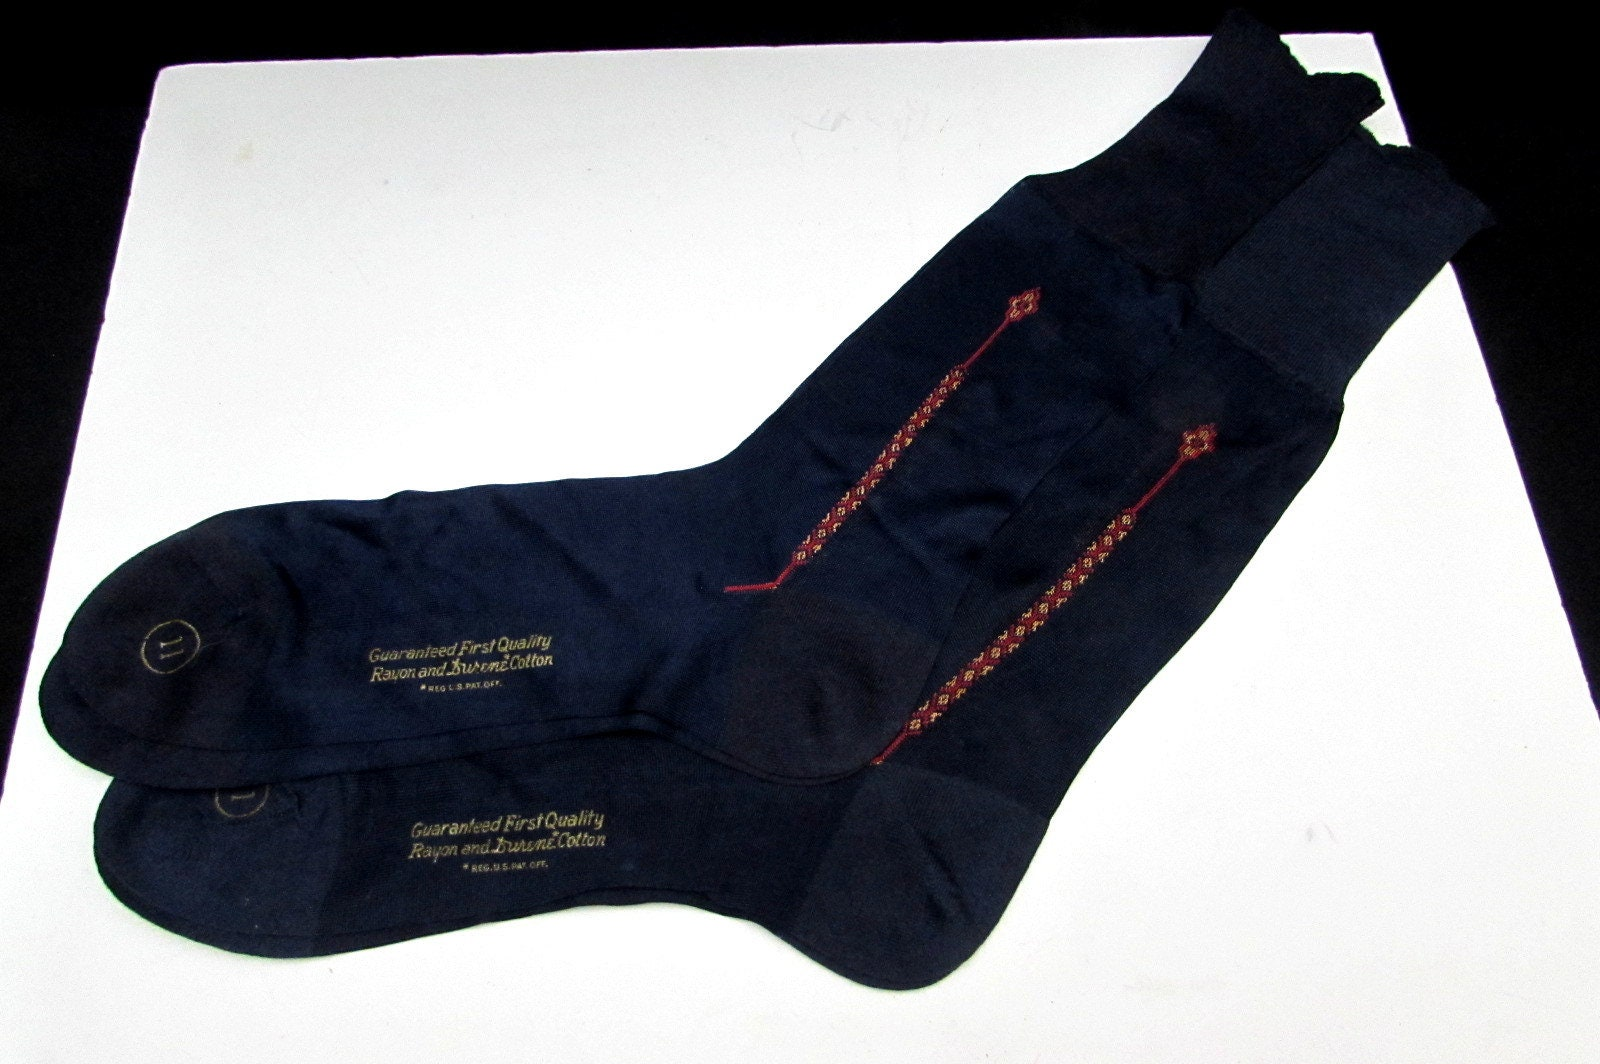 1940s Mens Ties | Wide Ties & Painted Ties 2 Pairs Unused 40S Vintage Embroidered Rayon Durene Cotton Mens Socks Navy Blue Lot Size 11 Thom Mccan Deadstock New Old Stock Nos Art Deco $4.50 AT vintagedancer.com